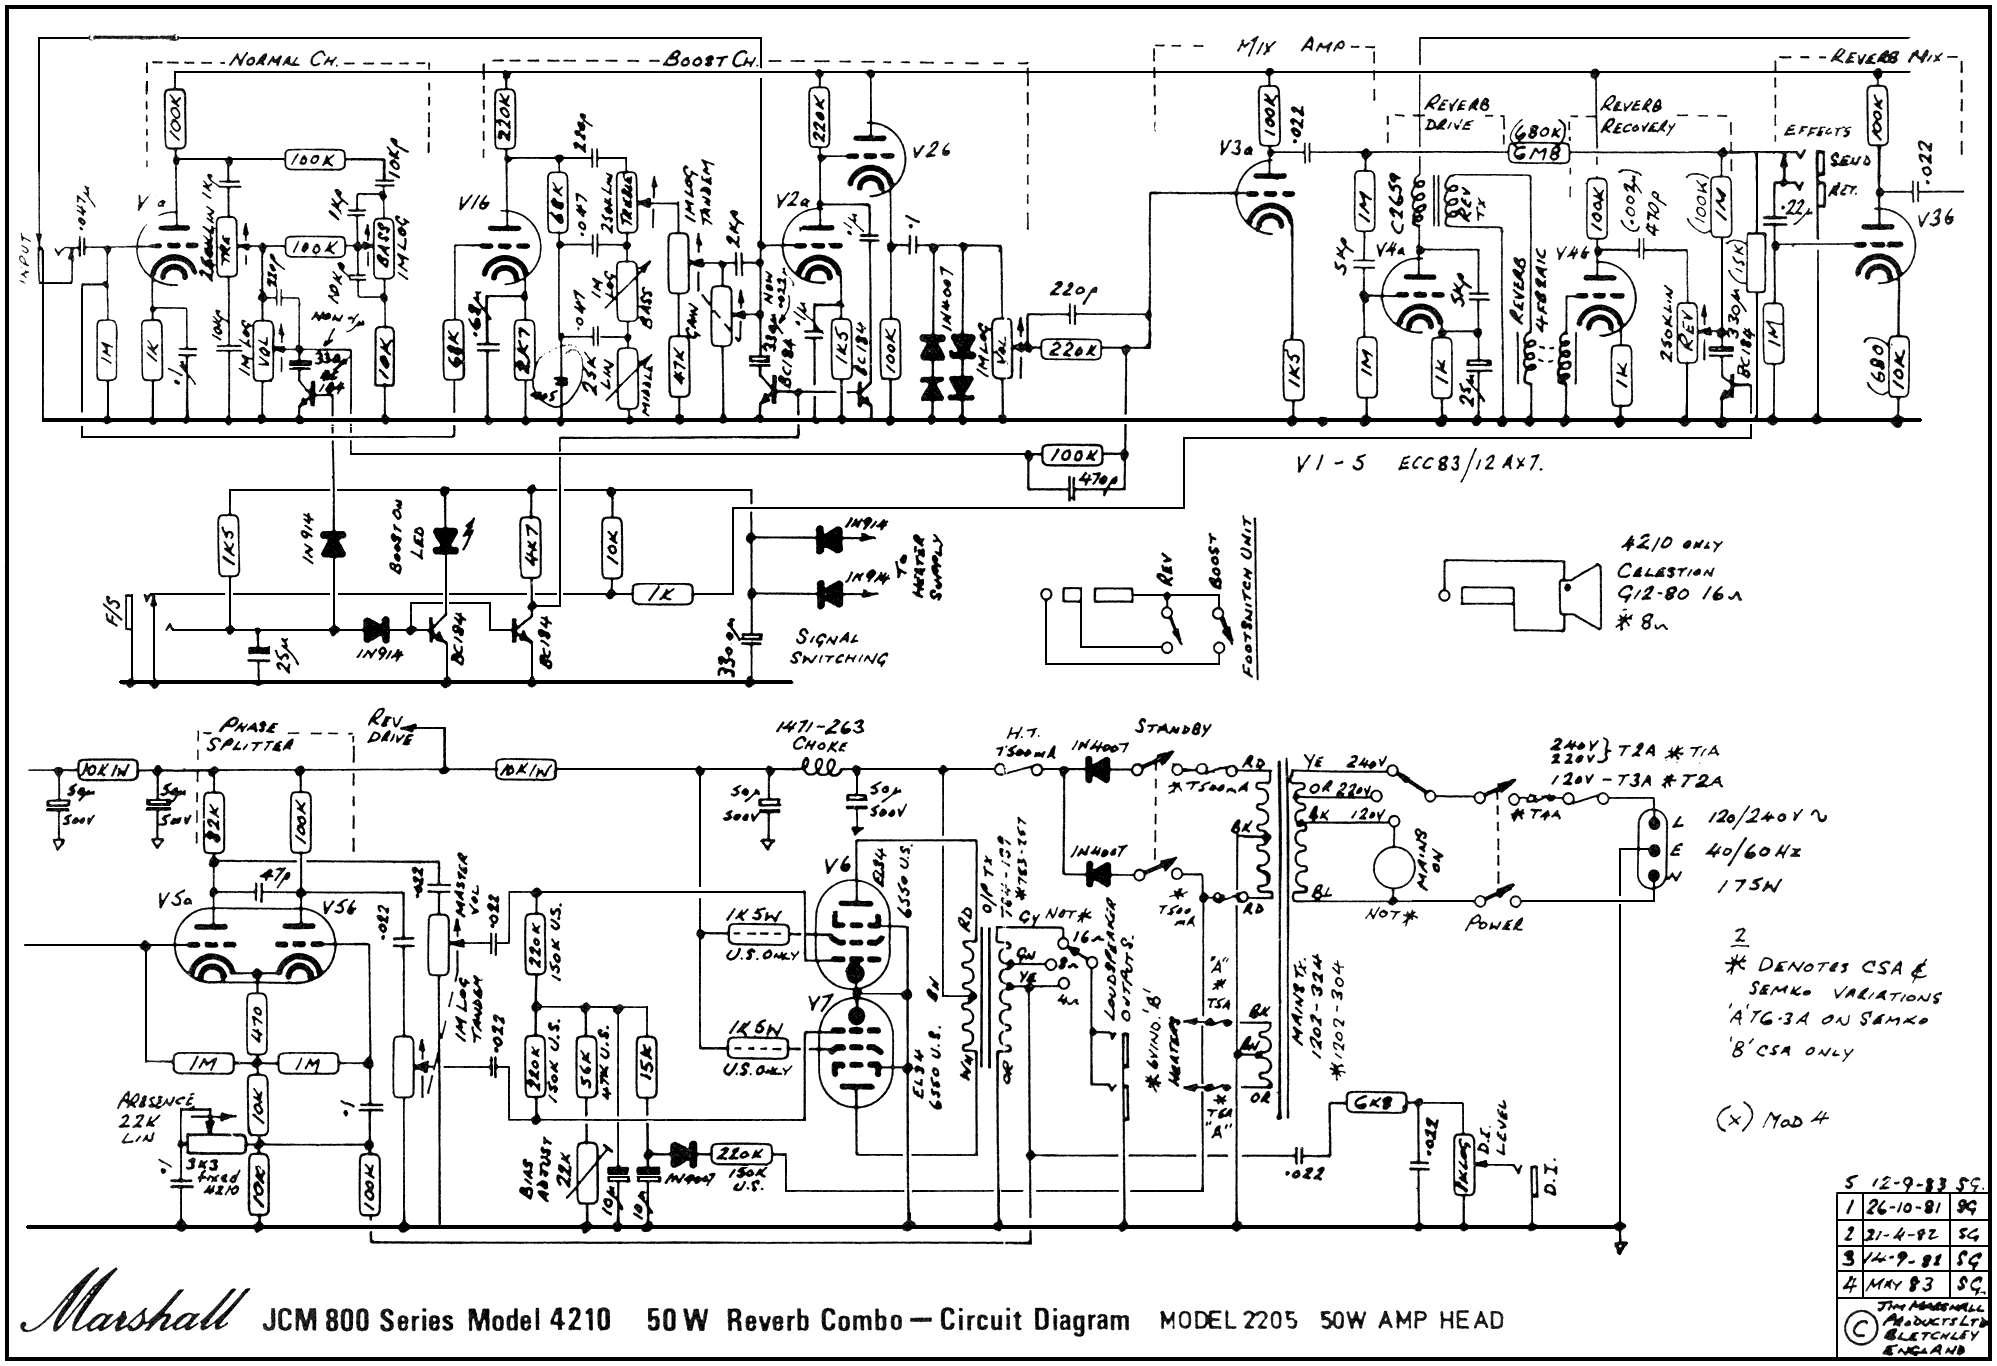 marshall-JCM800_4210_Schem Marshall Schematic on marshall amp layout, marshall 1959 layout, marshall 1959 back, marshall s manual, marshall 2210 footswitch, marshall 2061x, marshall 1959slp, marshall 1987 circuit,